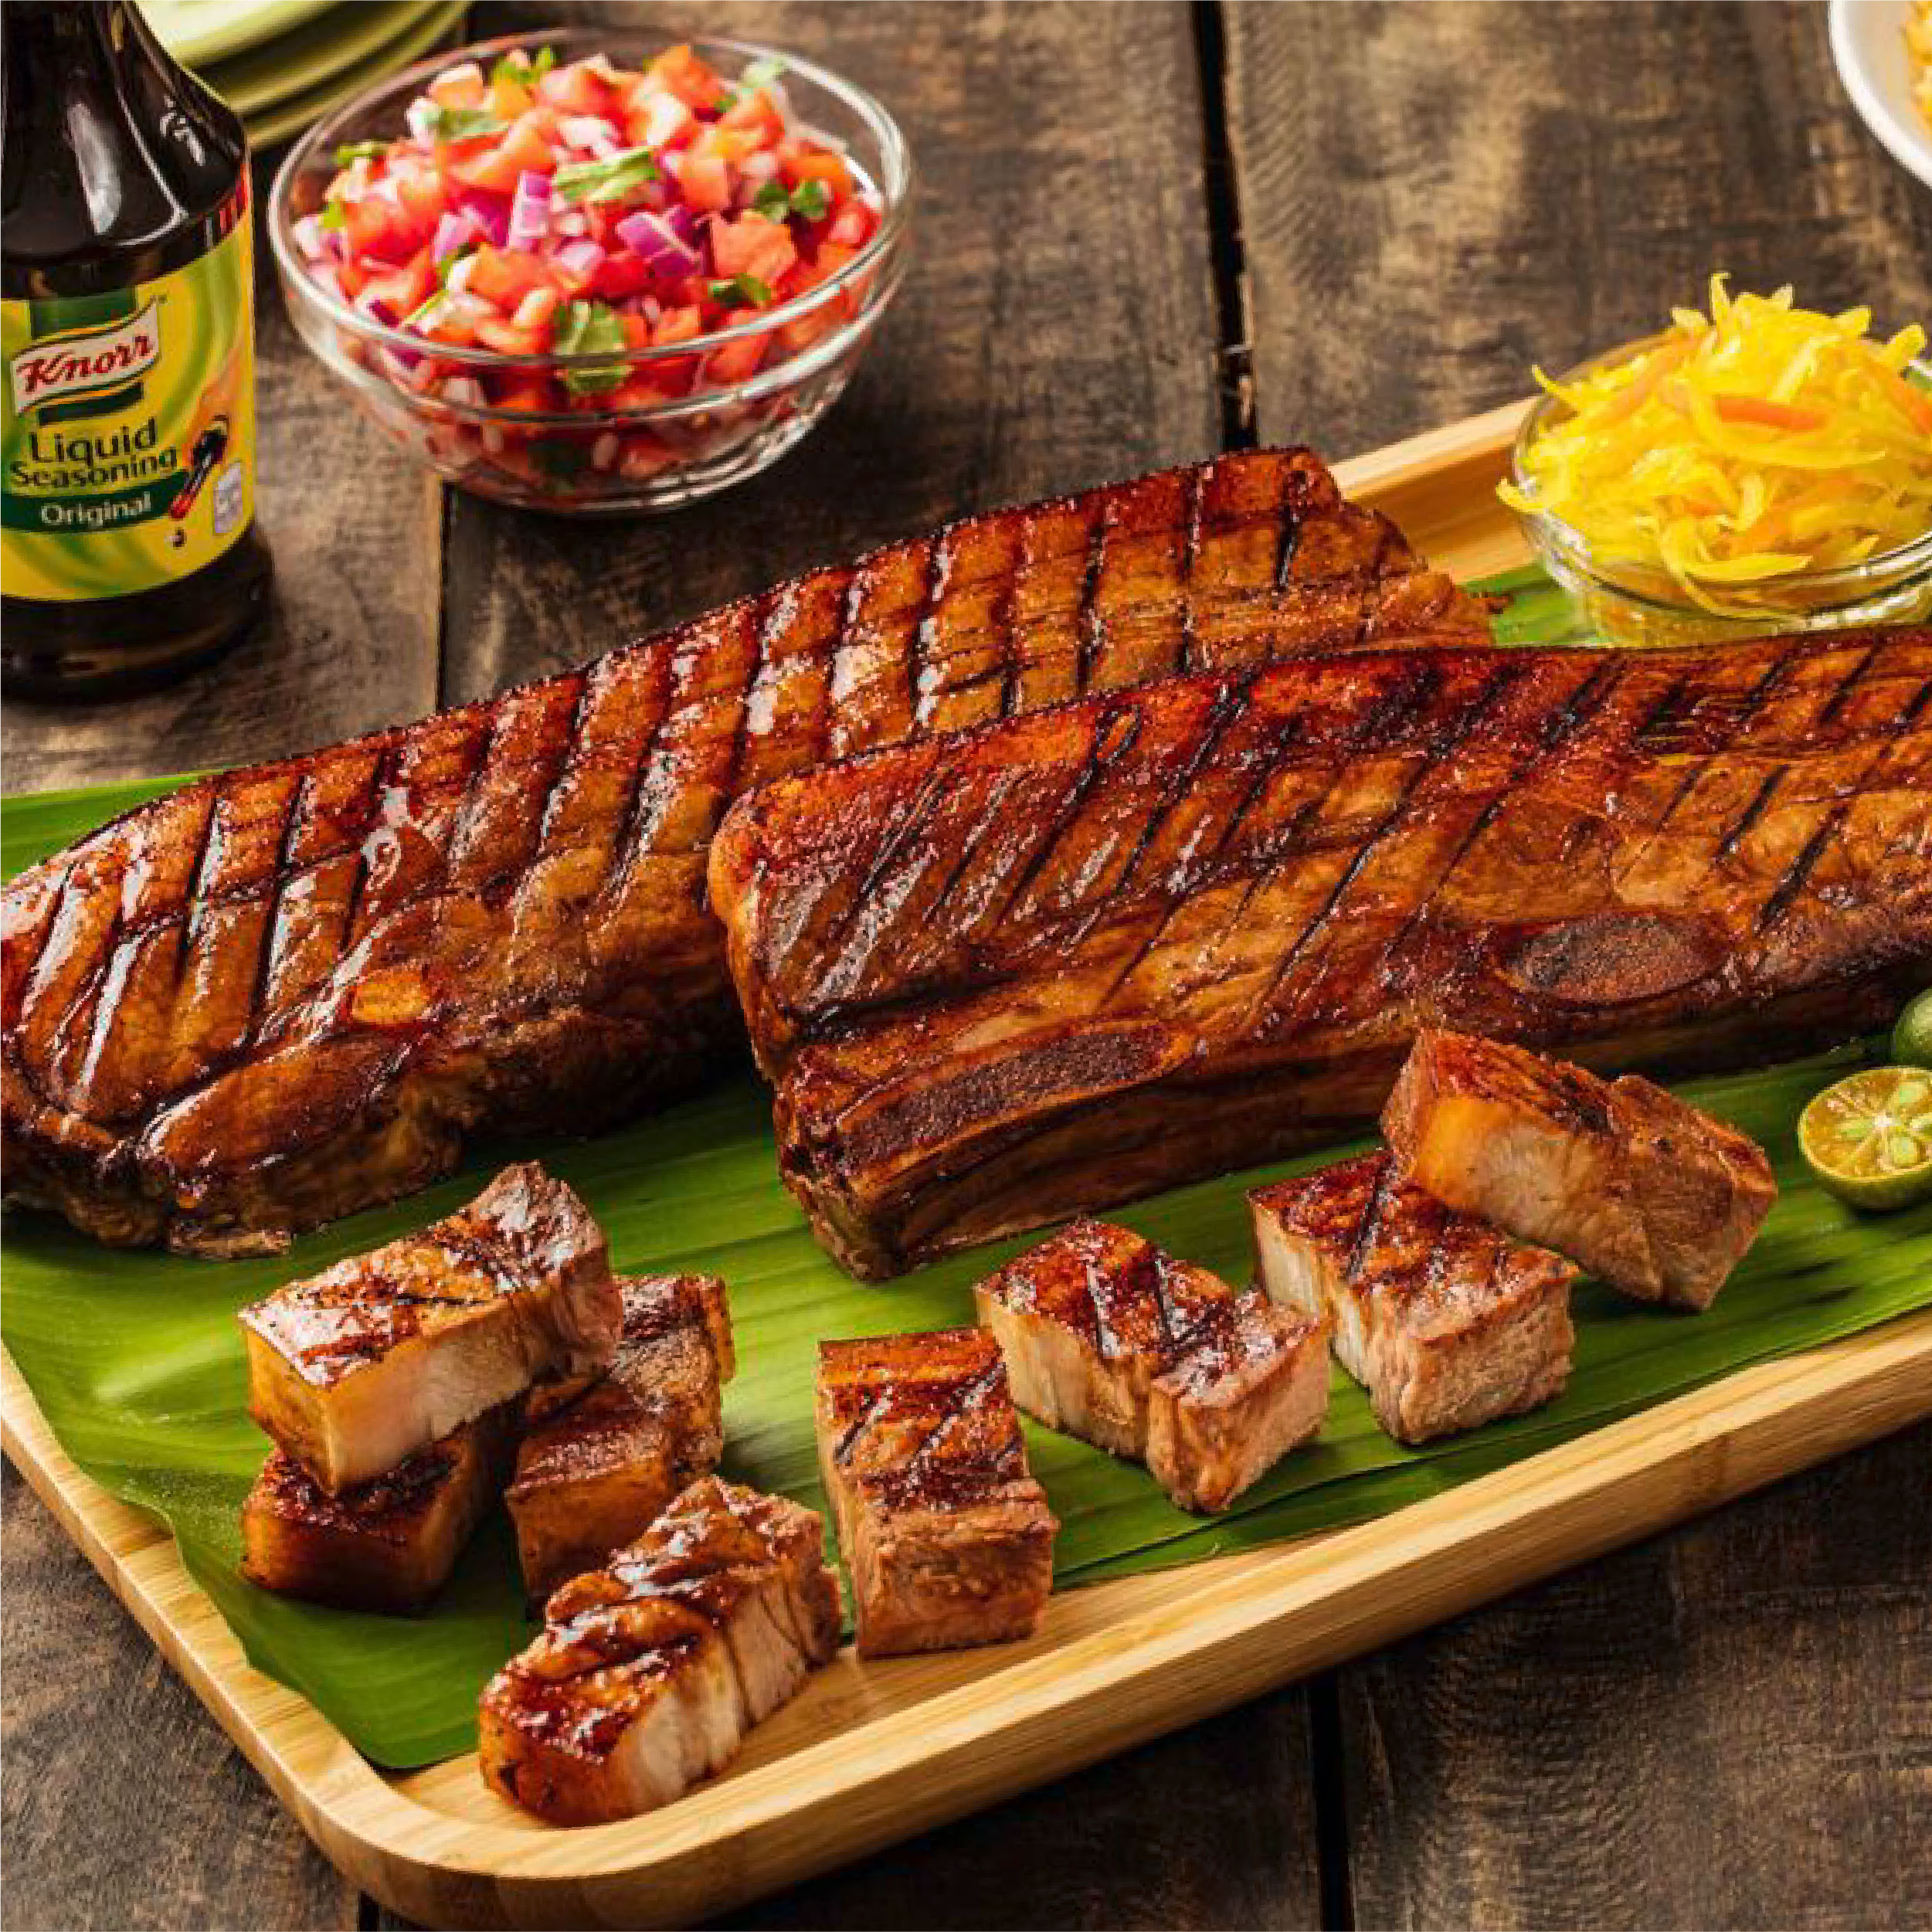 KNORR GRILLED LIEMPO